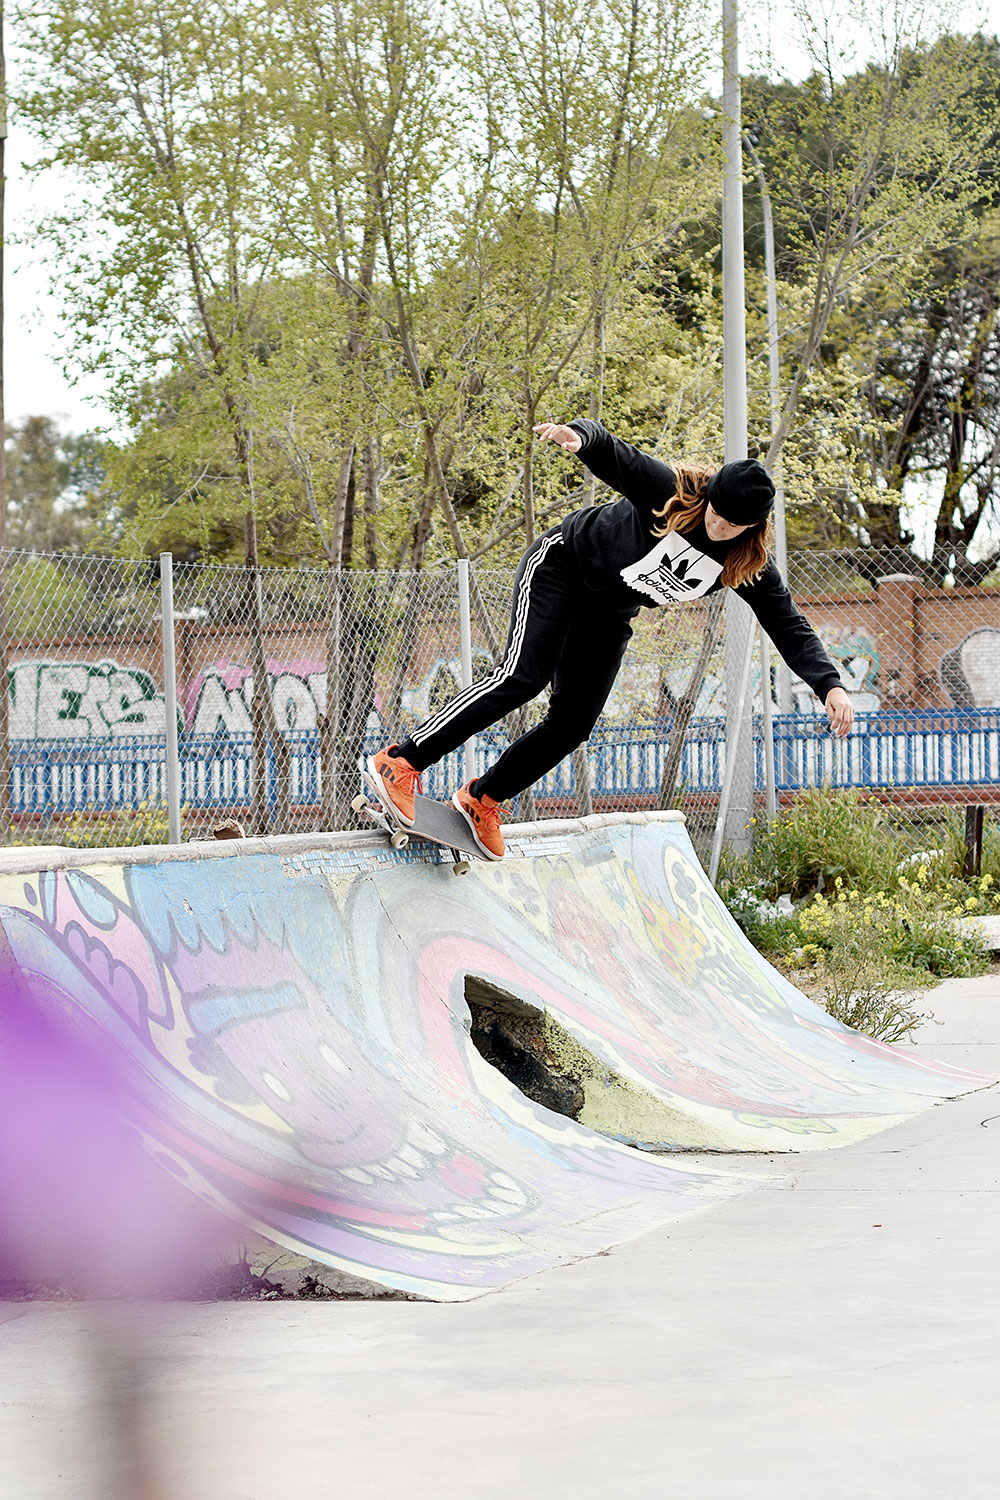 Andrea Benitez, bs5050, Madrid 2019. Photo Credit : Lews Royden.